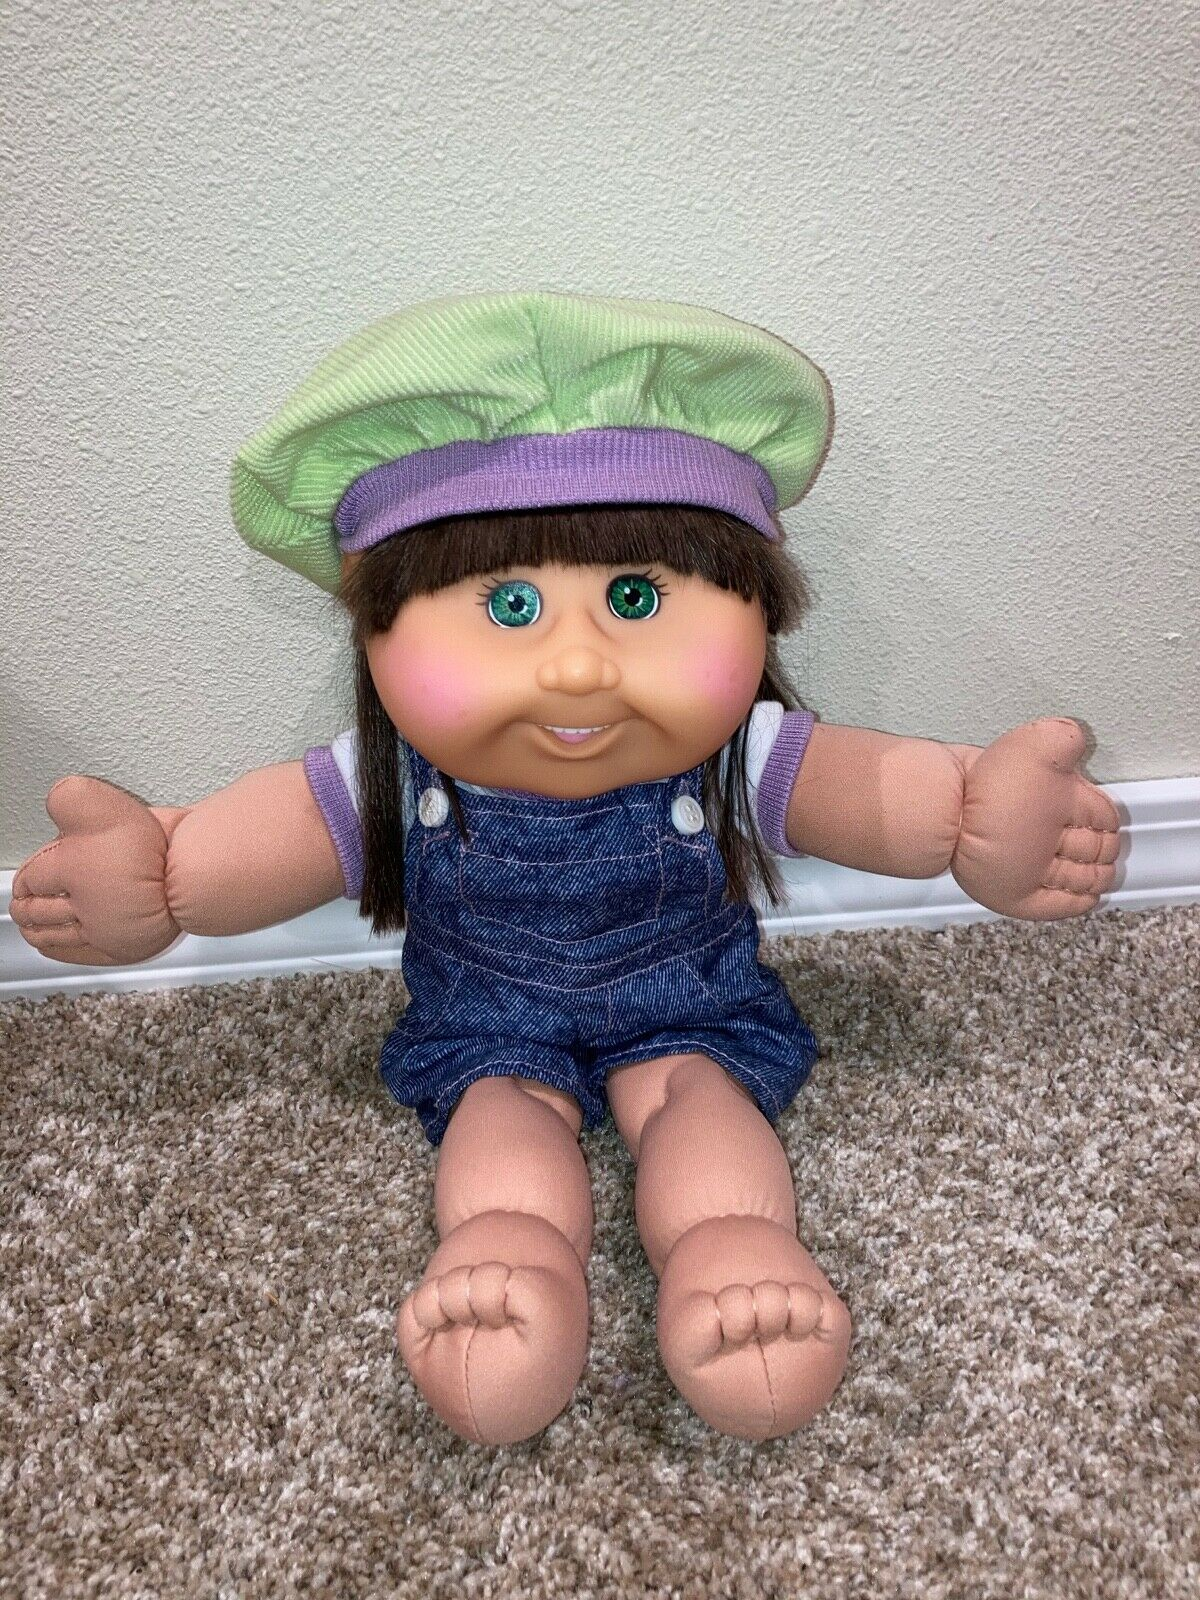 CABBAGE PATCH KID GIRL DOLL 14  - $13.00